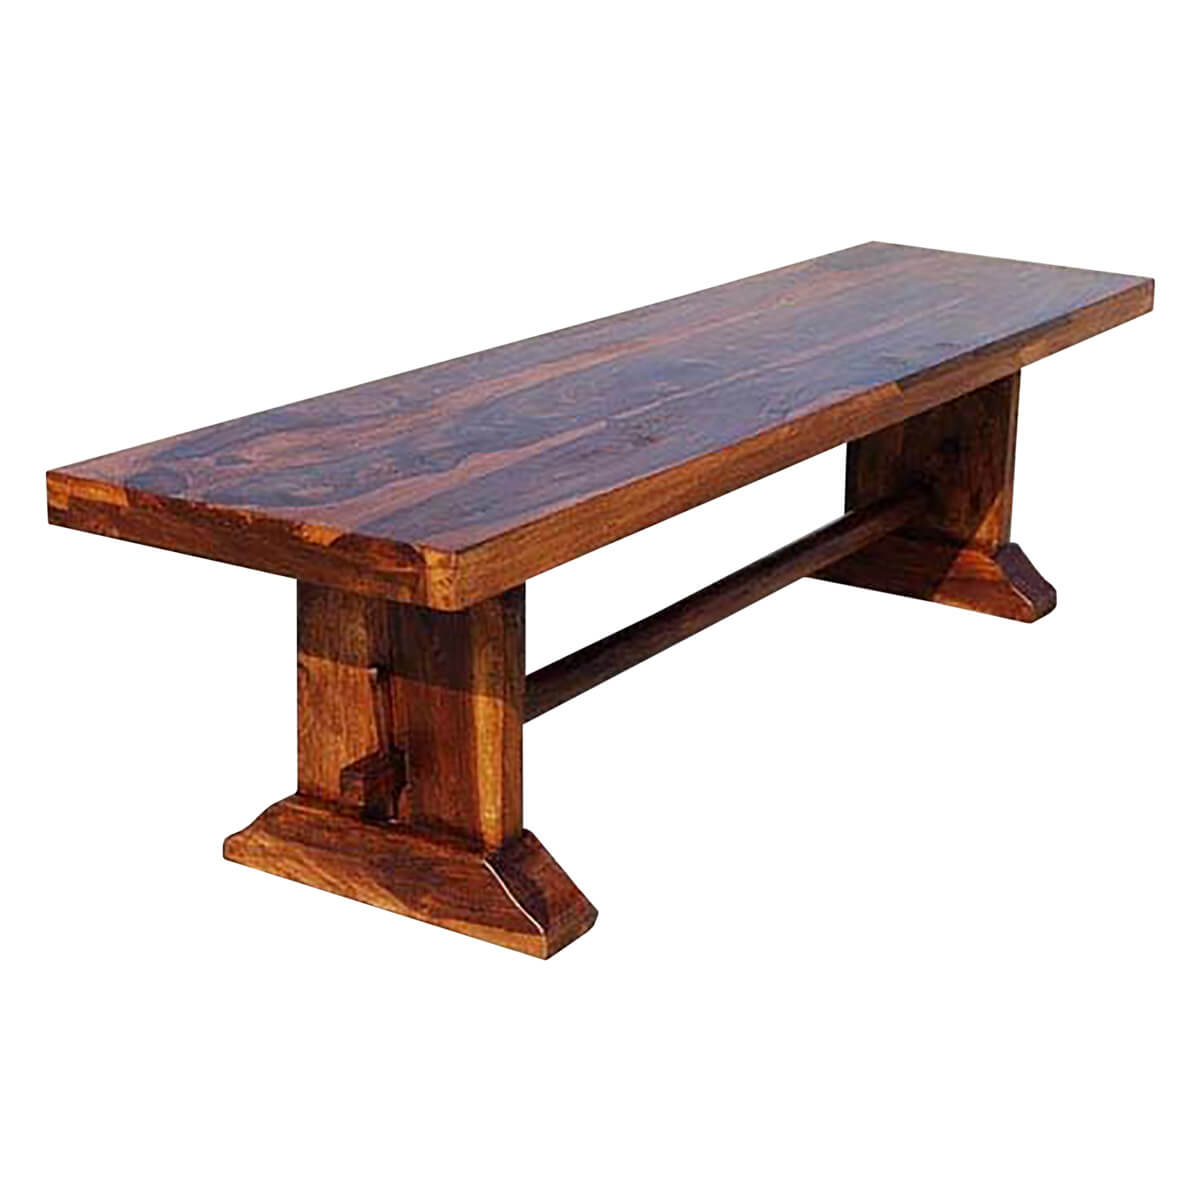 Simple Wood Bench Design Plans Online Woodworking Plans